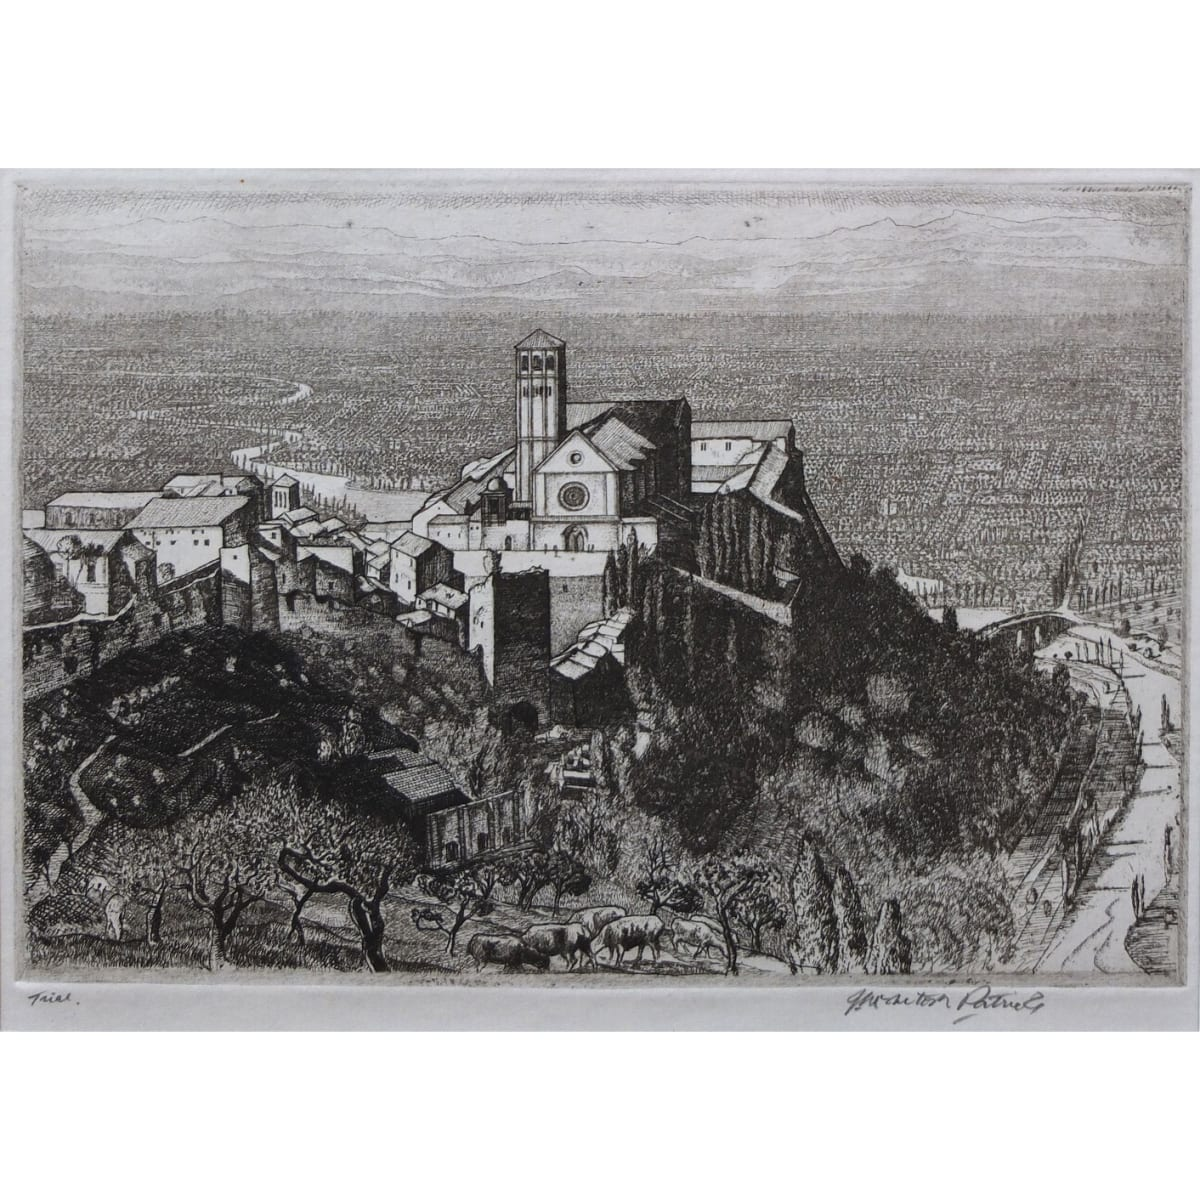 James McIntosh Patrick Assisi, c.1934 signed and inscribed 'trial' in pencil to marginl titled and dated on exhibition label mount verso etching plate size: 5 1/2 x 8 inches; sheet size: 7 1/4 x 12 7/16 inches